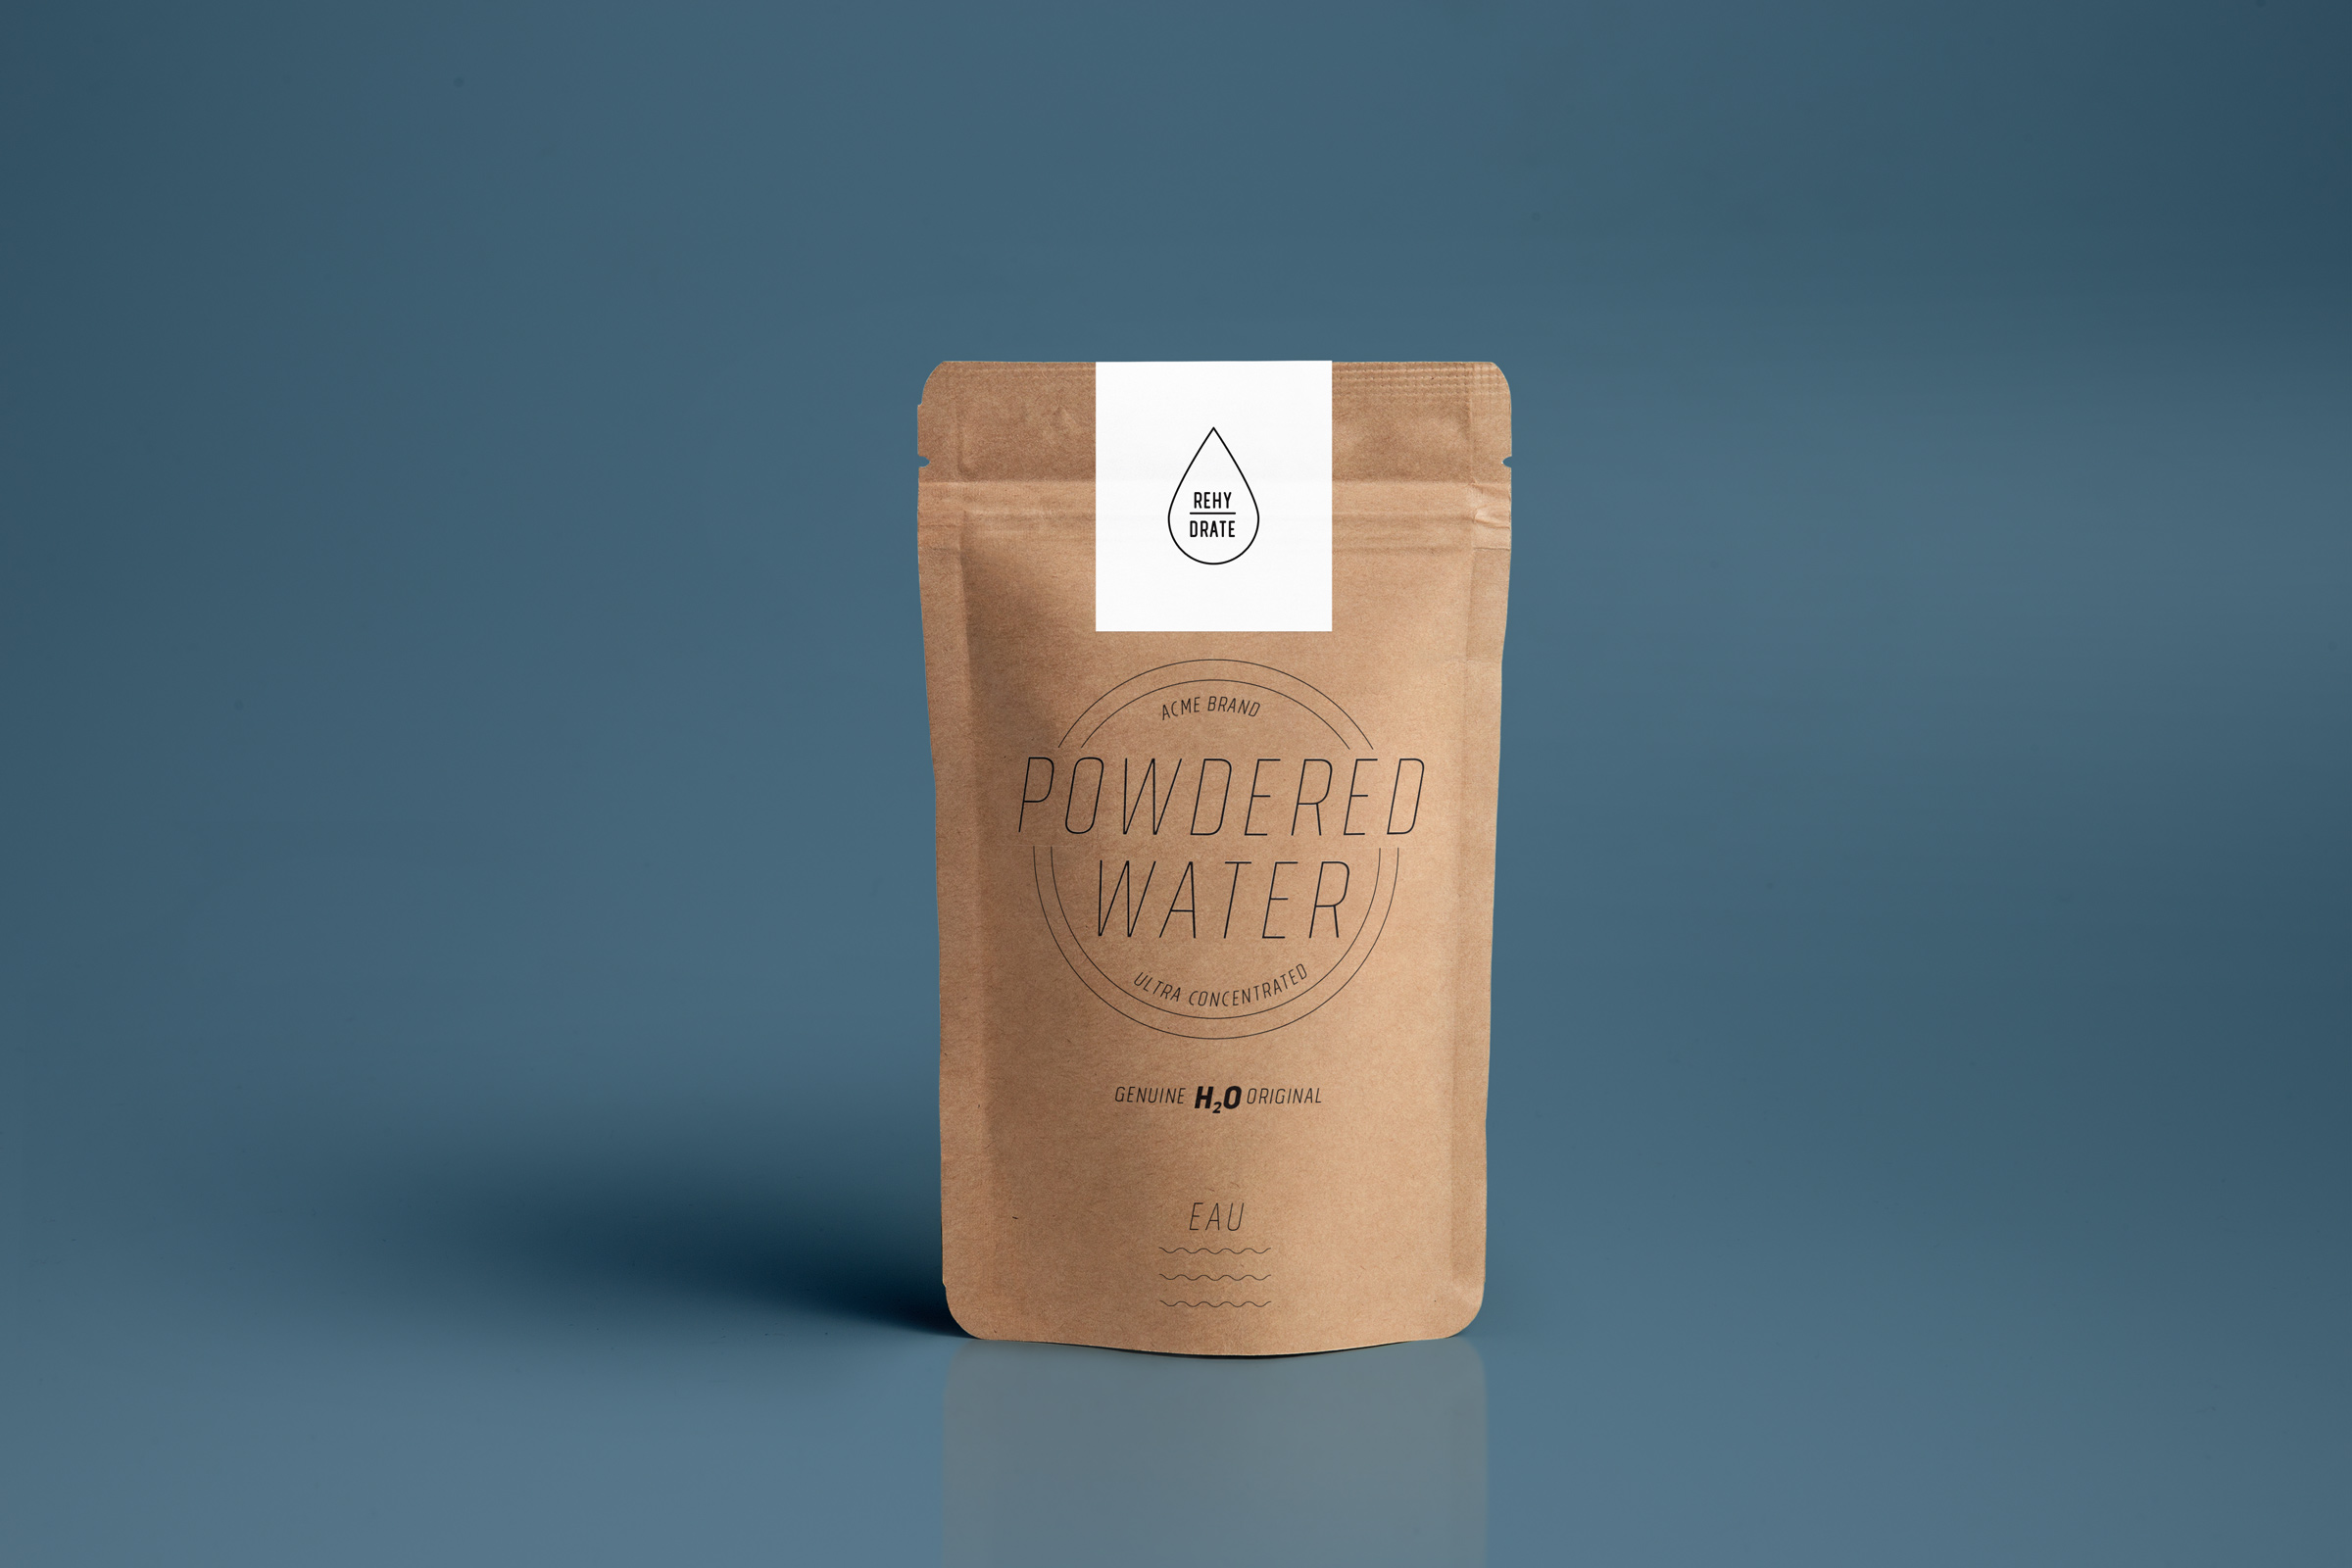 Powdered Water Packaging